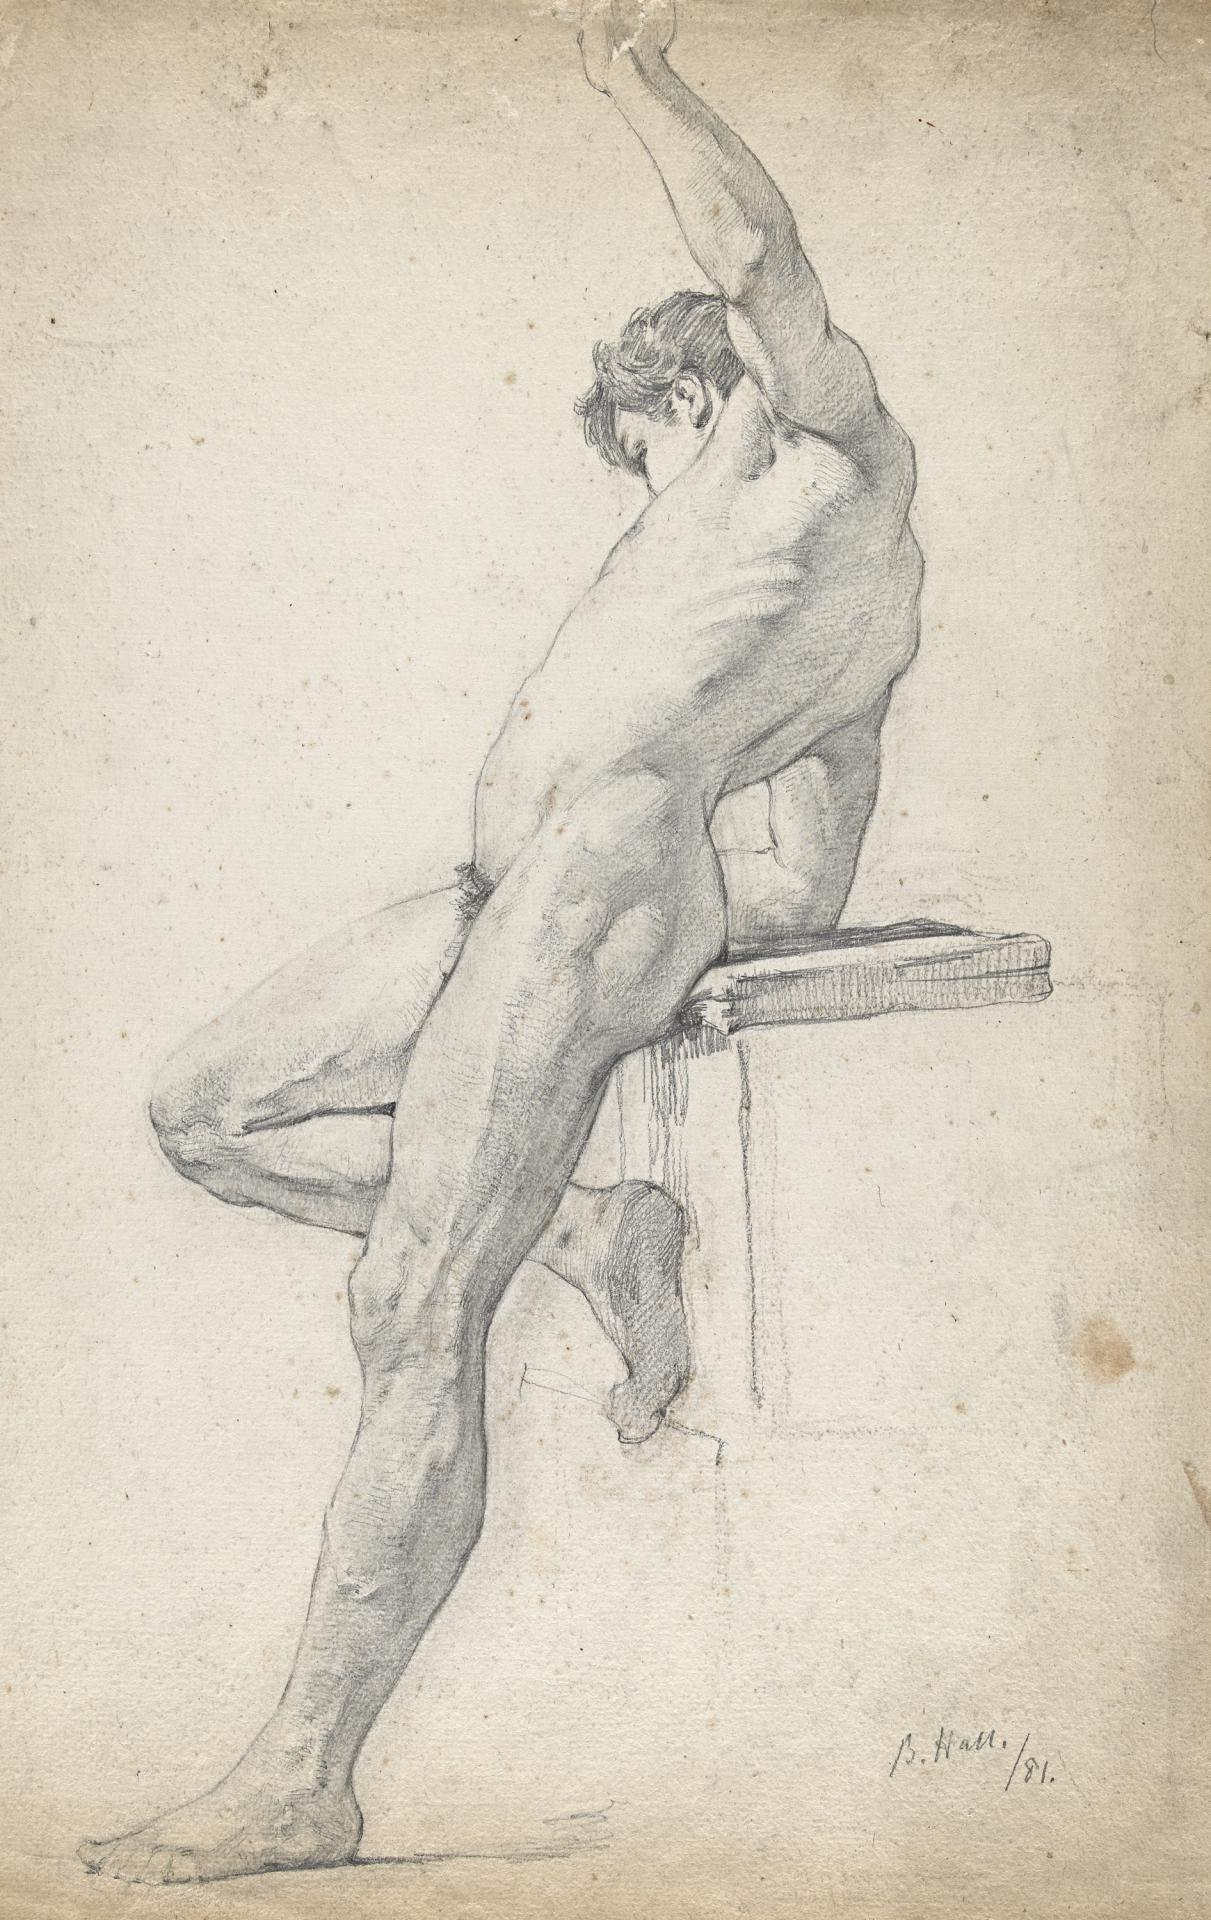 Life study of male figure